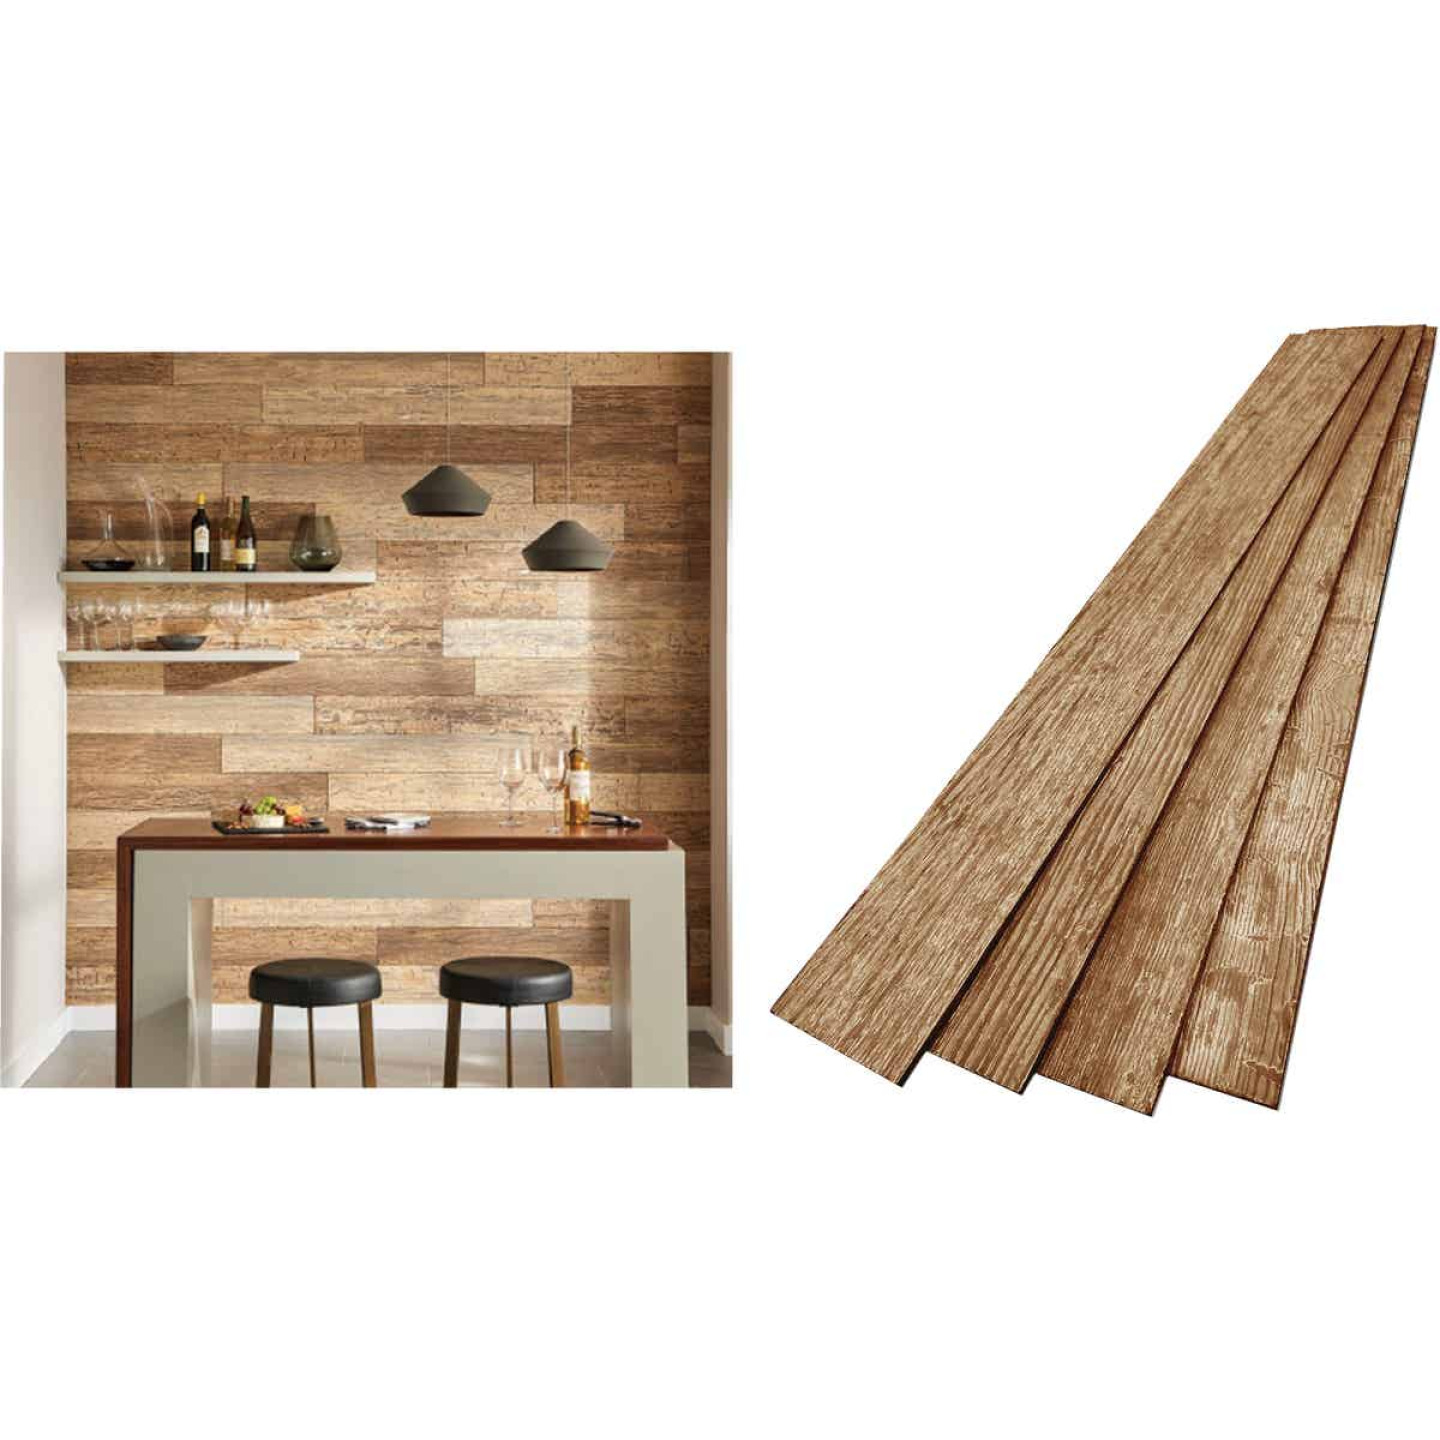 DPI 6 In. W. x 48 In. L. x 1/4 In. Thick Espresso Rustic Wall Plank (12-Pack) Image 1